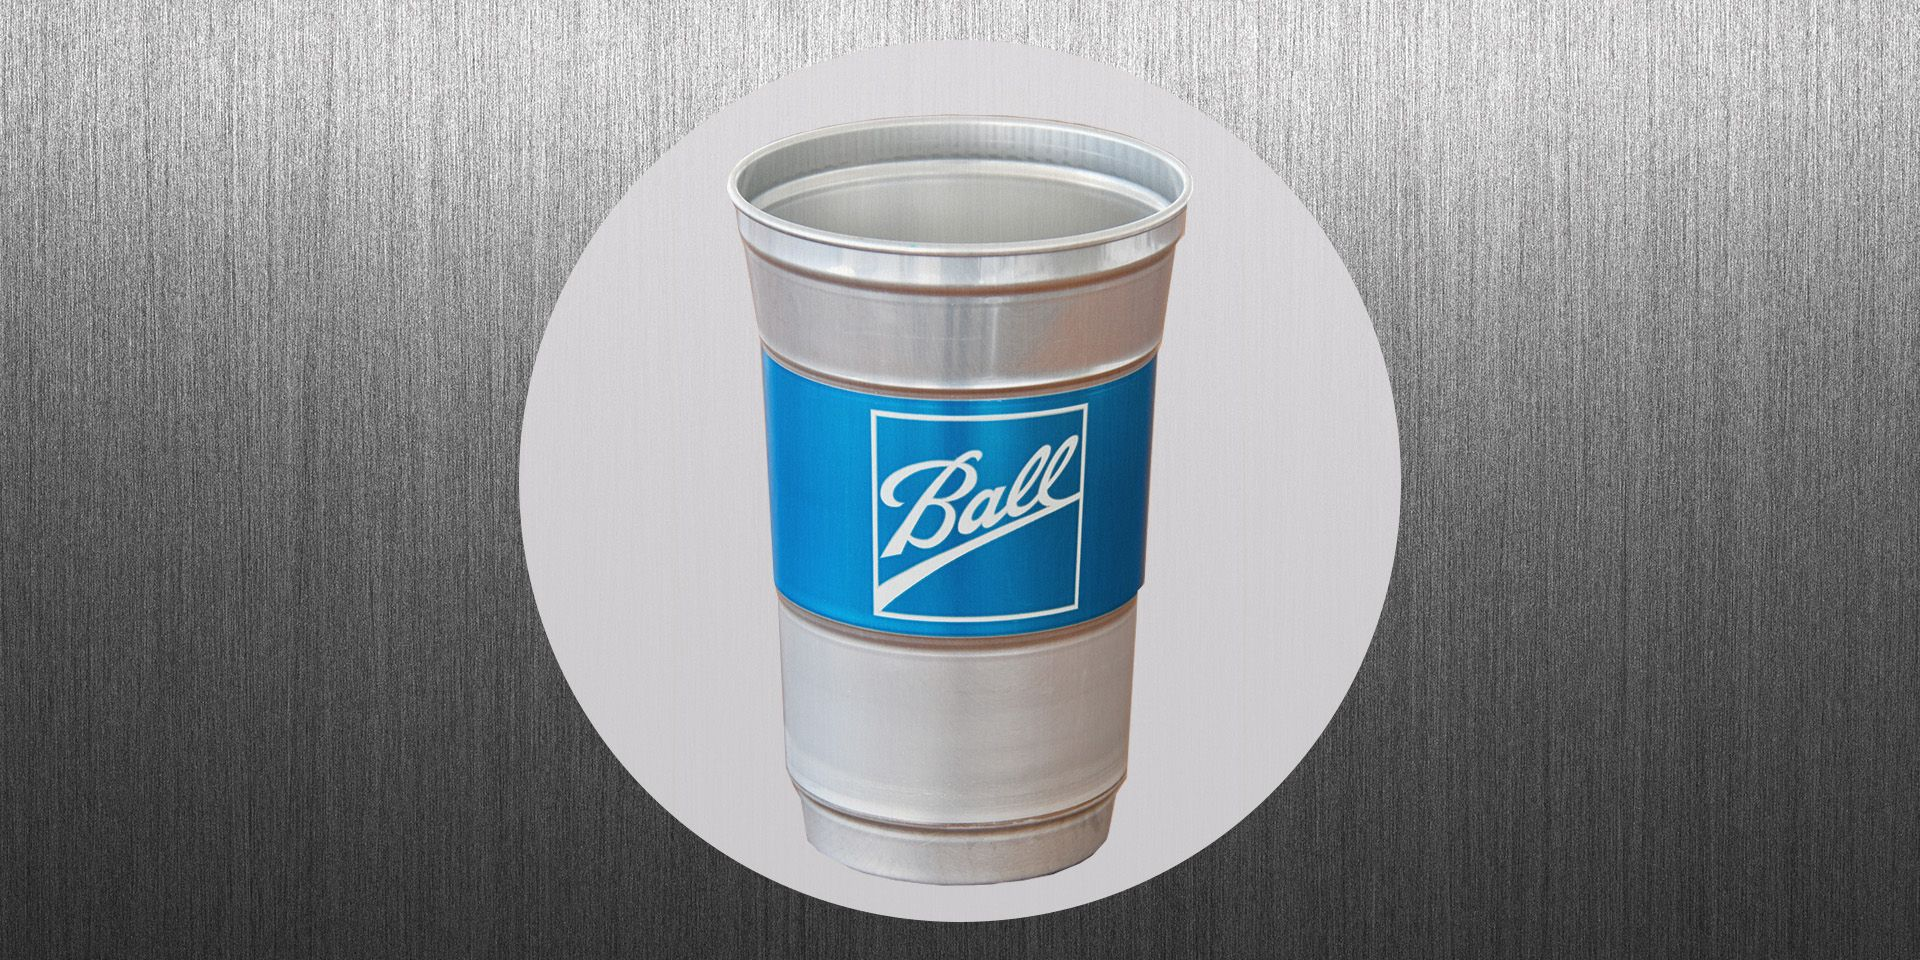 Ball Is Making Aluminum Beer Pong Cups That Are 'Infinitely Recyclable'